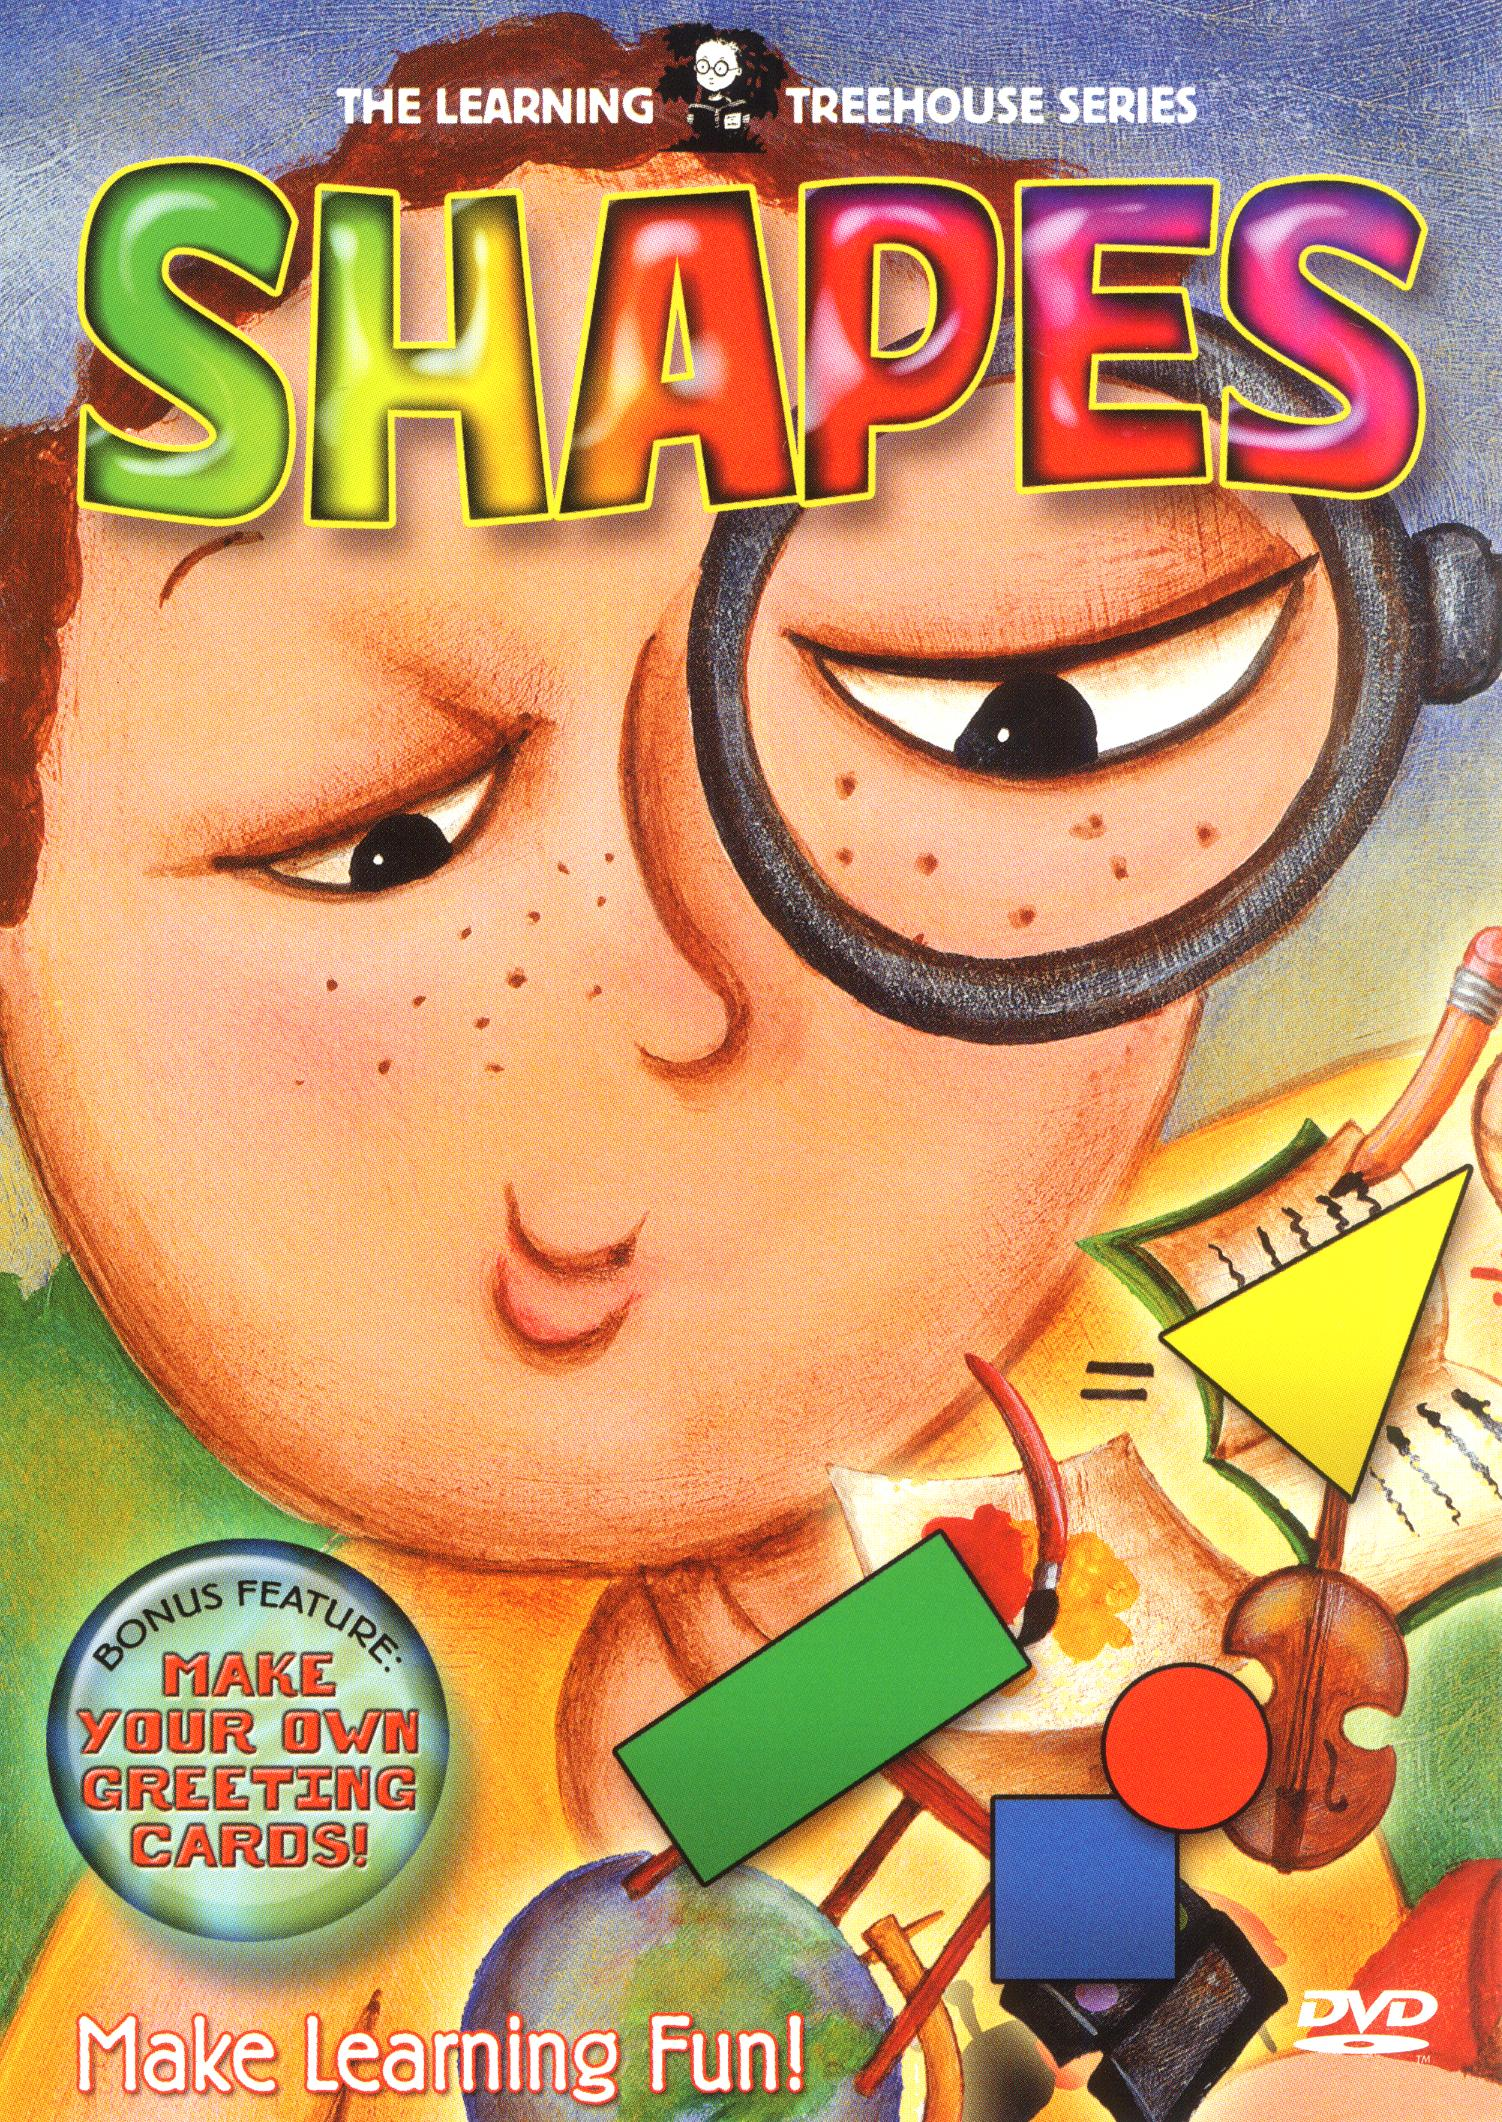 Learning Treehouse: Shapes